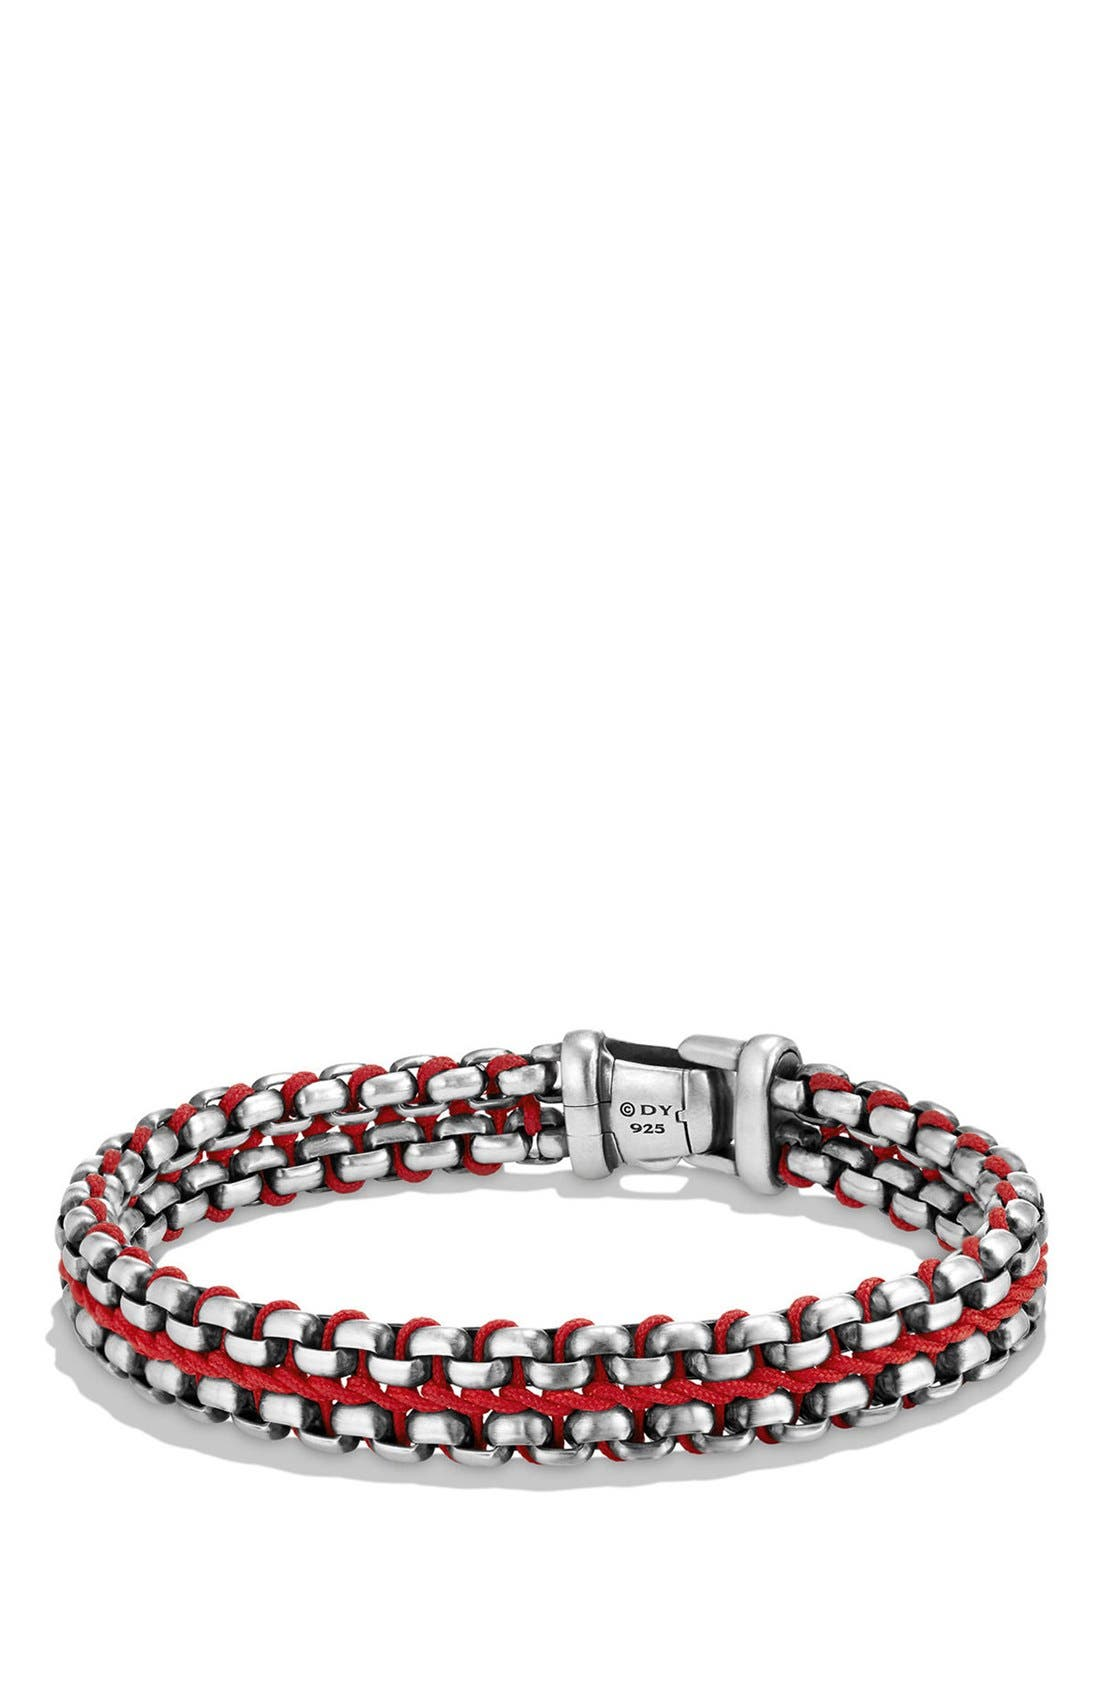 DAVID YURMAN Chain Woven Box Chain Bracelet